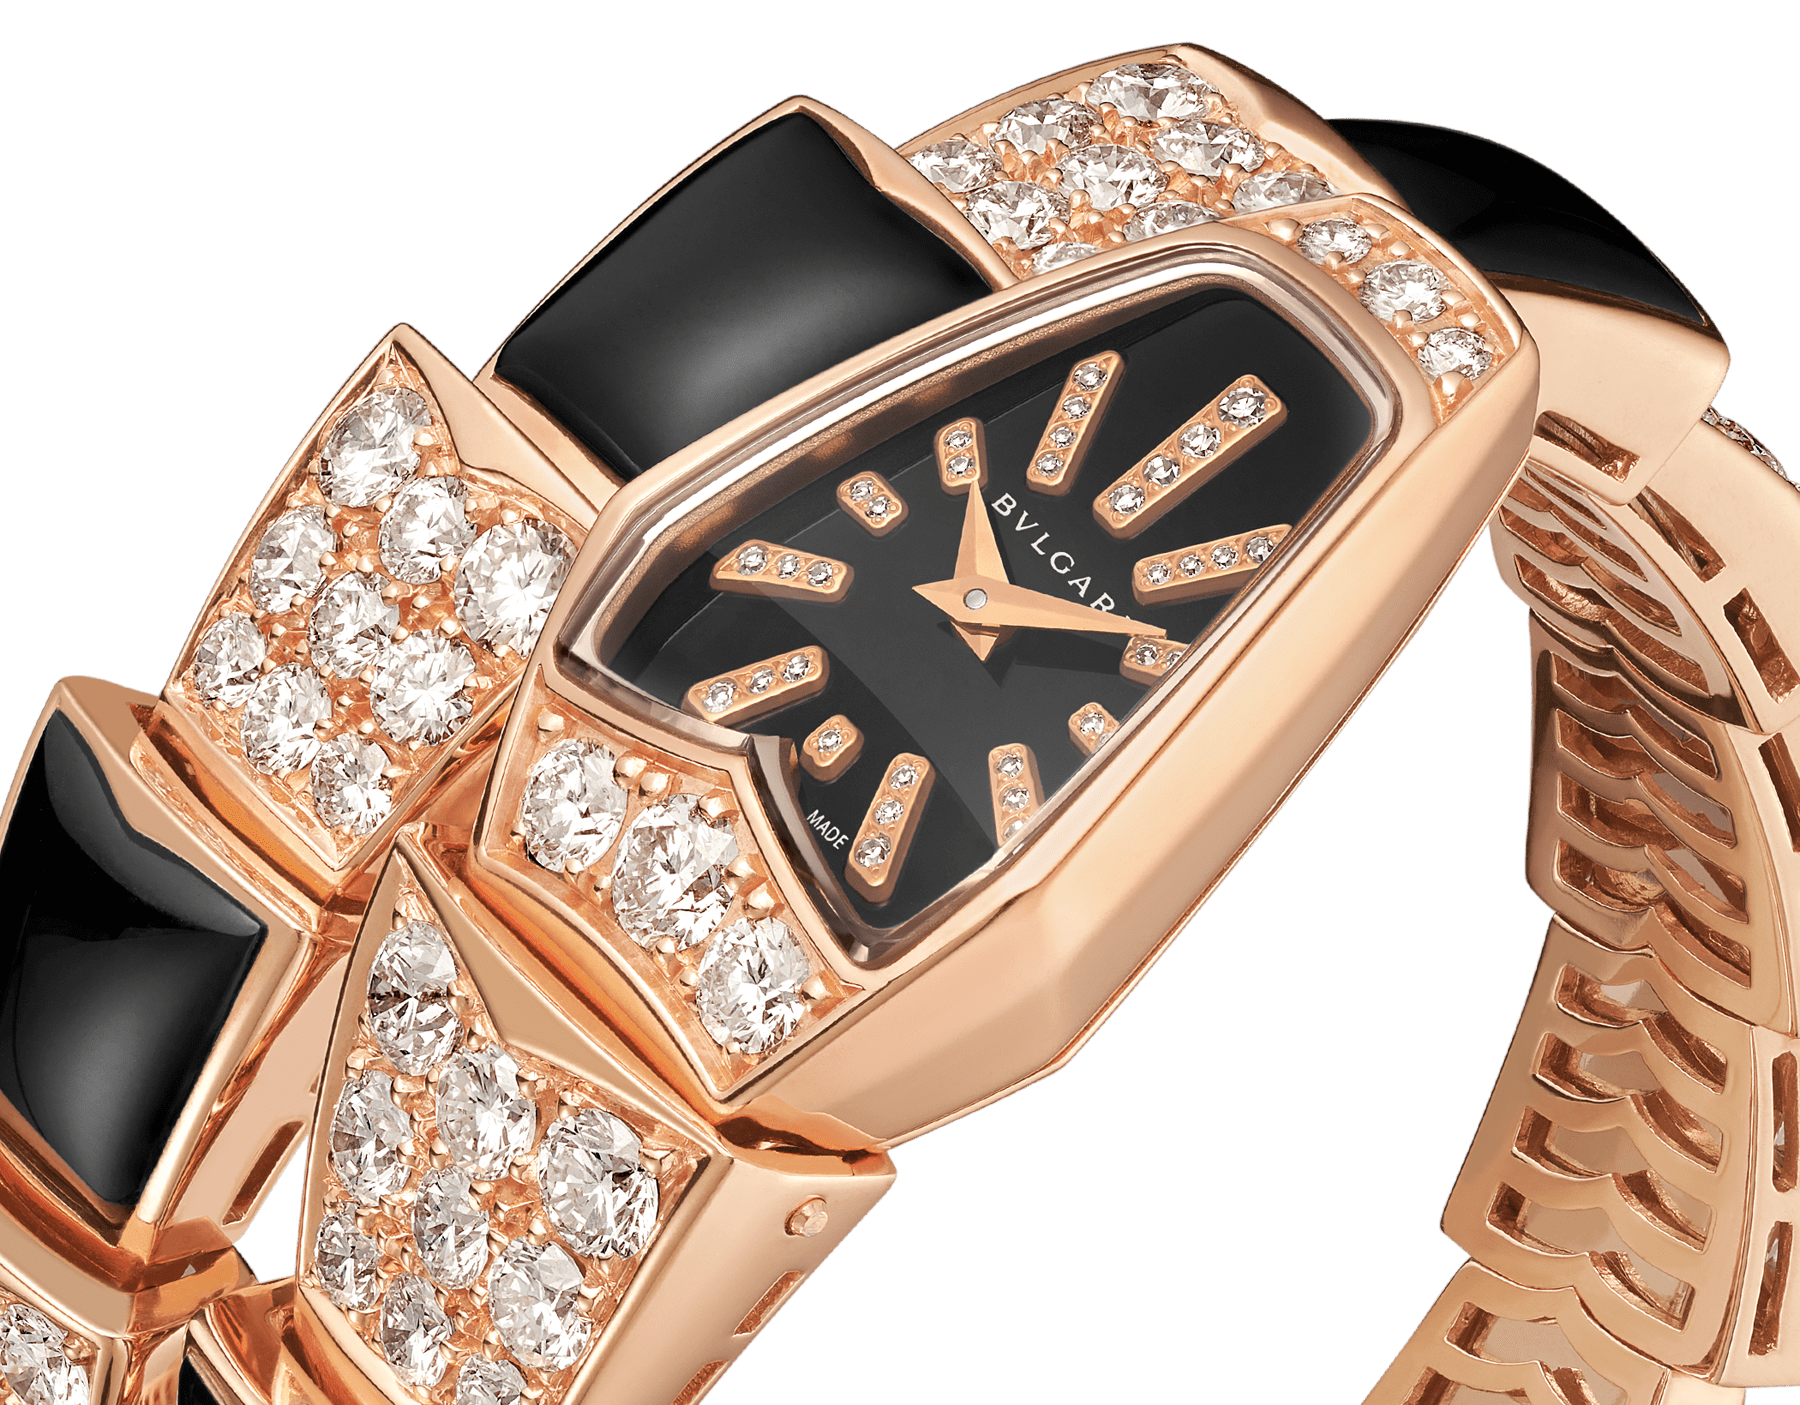 Serpenti Jewellery Watch with 18 kt rose gold case set with brilliant cut diamonds, black sapphire crystal dial, diamond indexes and 18 kt rose gold single spiral bracelet set with brilliant cut diamonds and black onyx. 101790 image 2